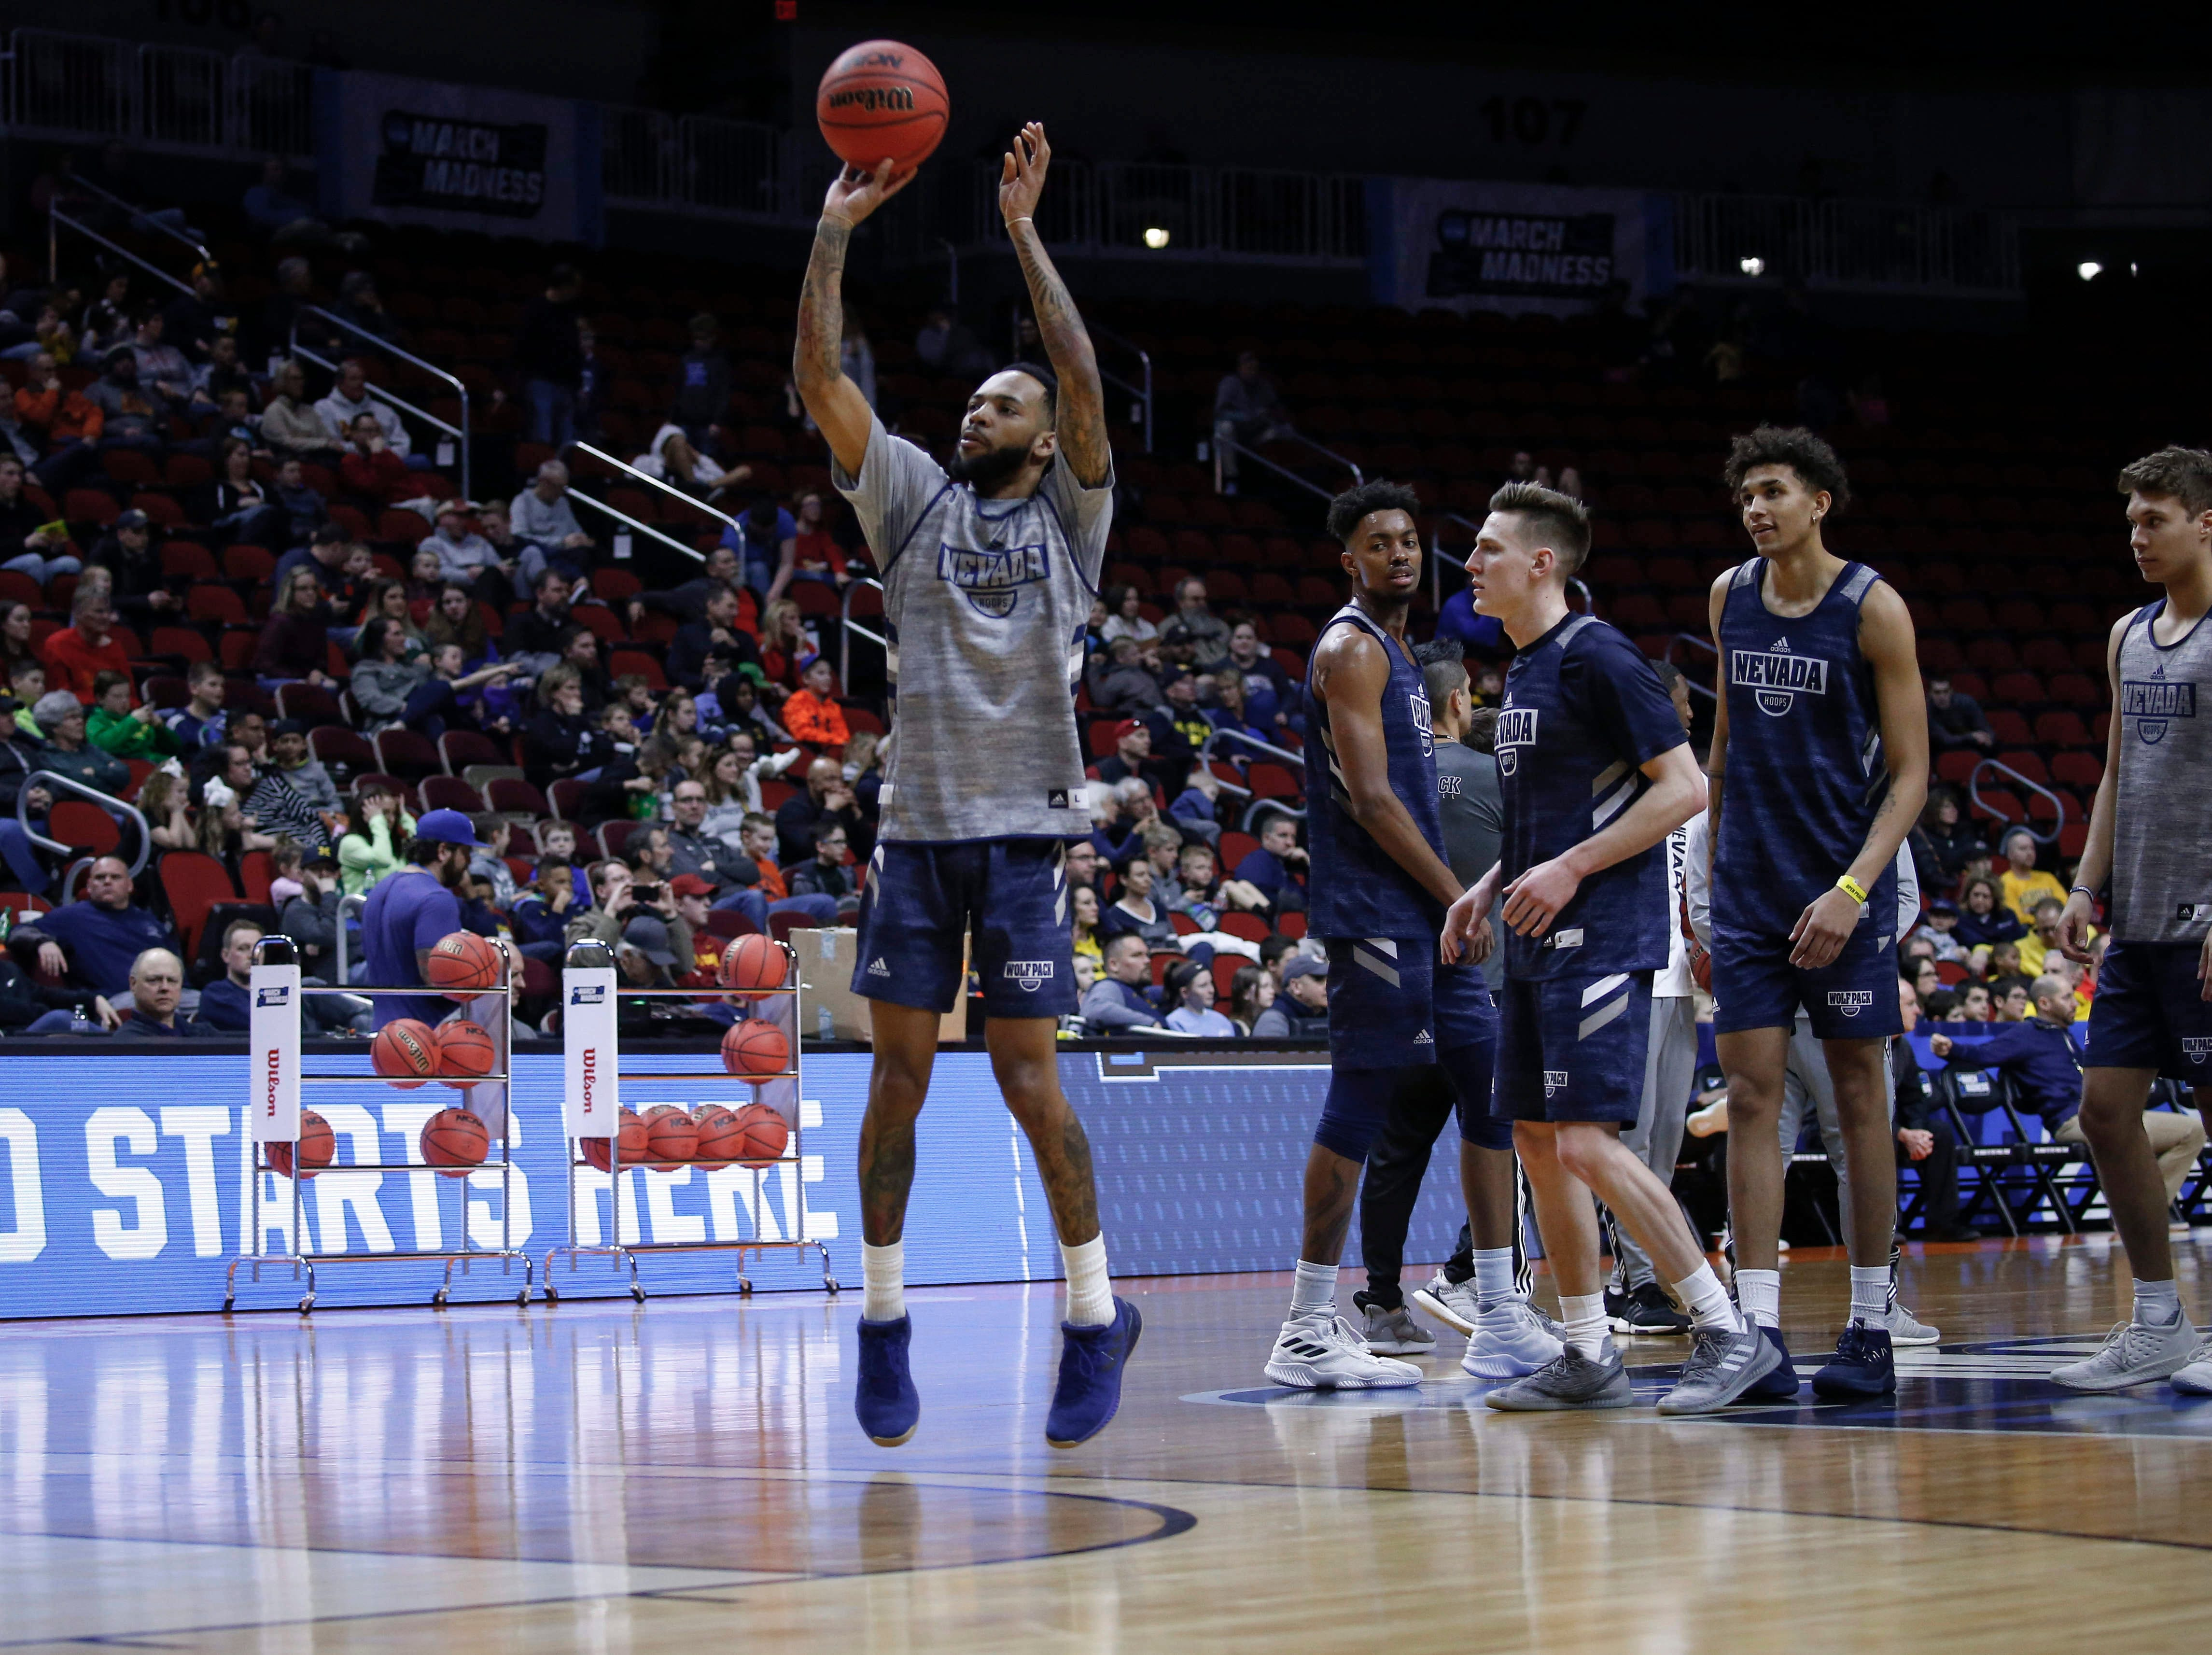 Members of the Nevada men's basketball team warm up during open practice on Wednesday, March 20, 2019, at Wells Fargo Arena in Des Moines, Iowa.